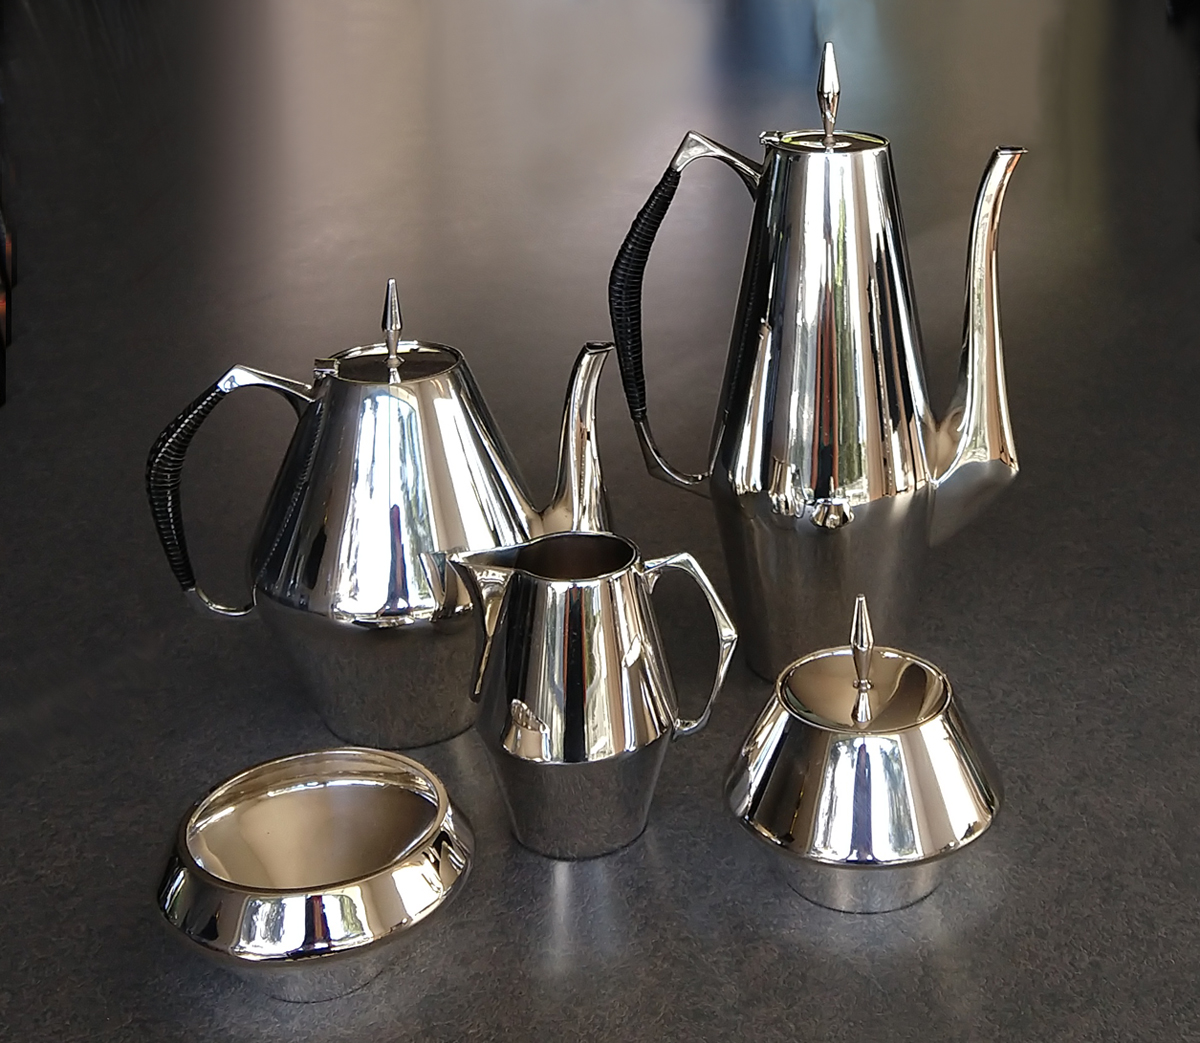 Sterling Diamond 20th-century tea and coffee service after restoration